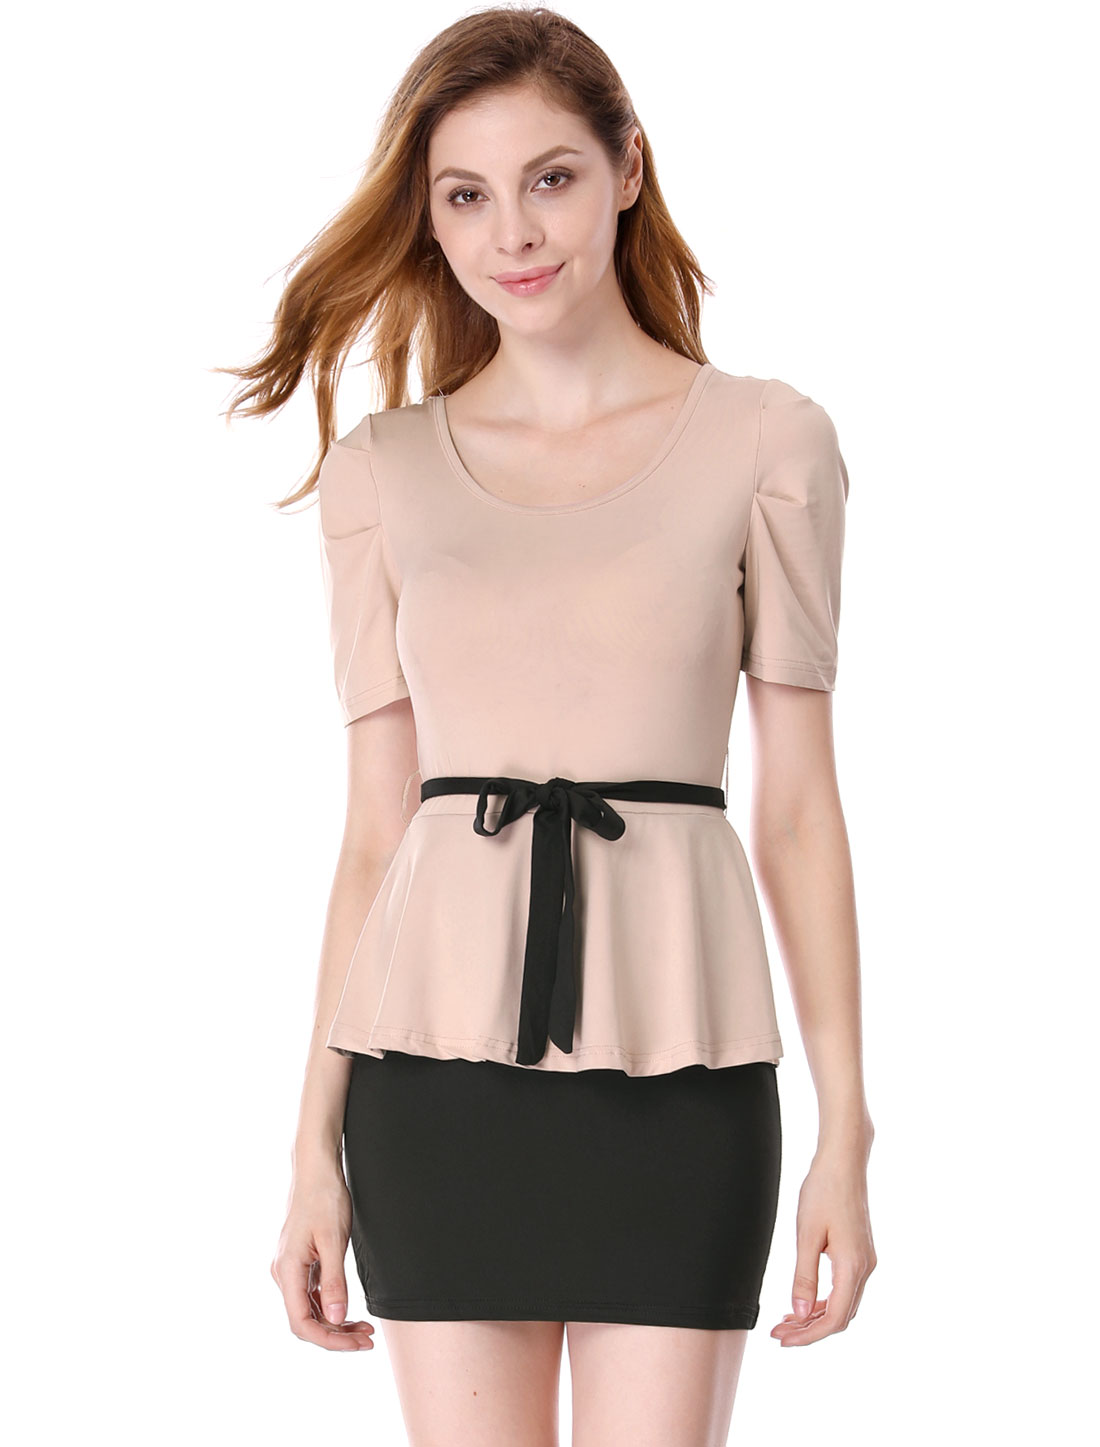 Pullover Contrast Color Black Pink Peplum Mini Dress L for Lady